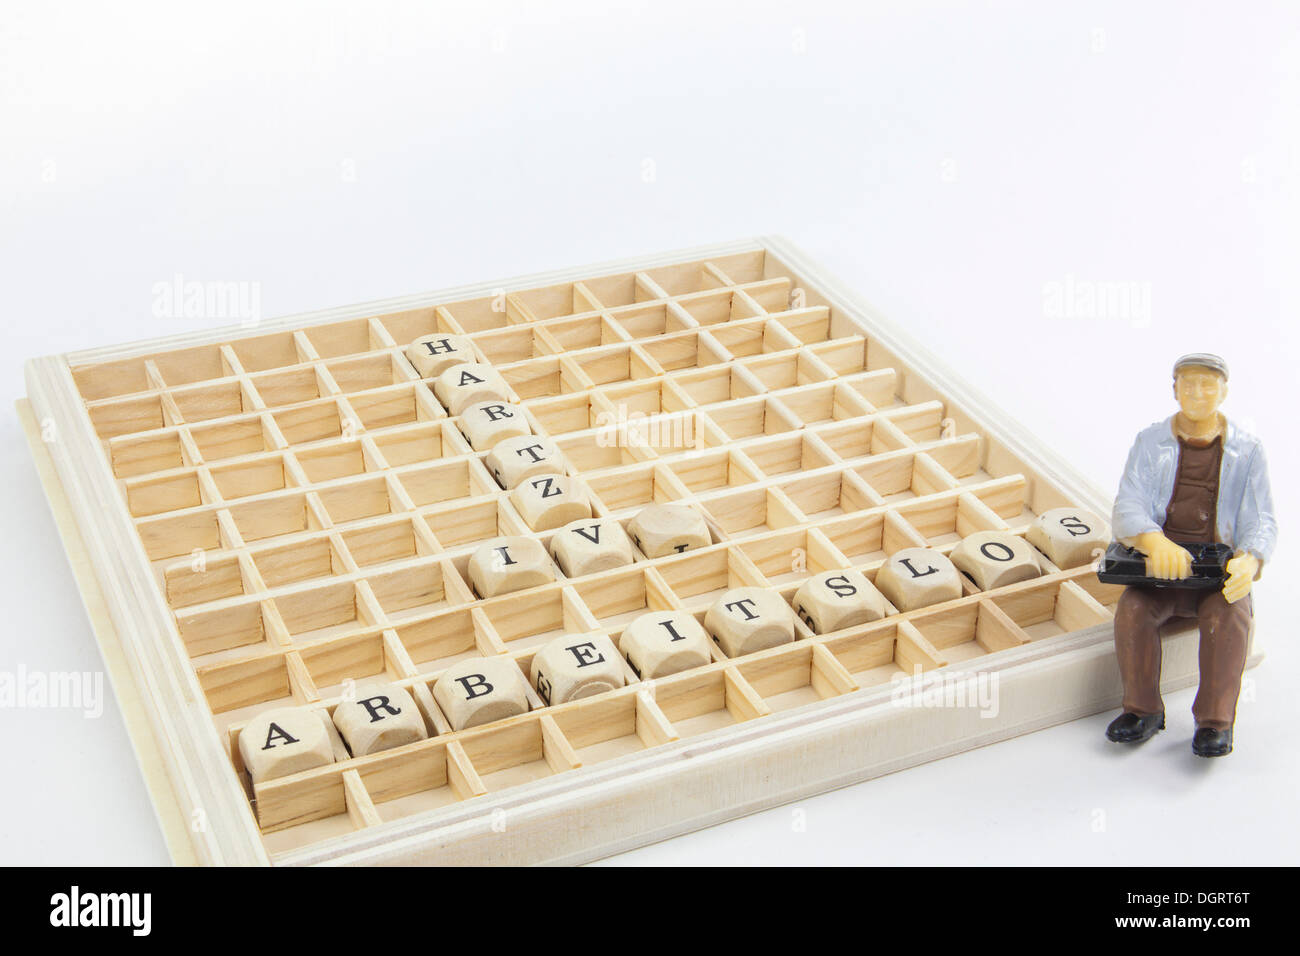 Miniature figure of an unemployed worker, letter cubes forming the words 'arbeitslos' and 'Hartz IV', German for 'unemployed' - Stock Image